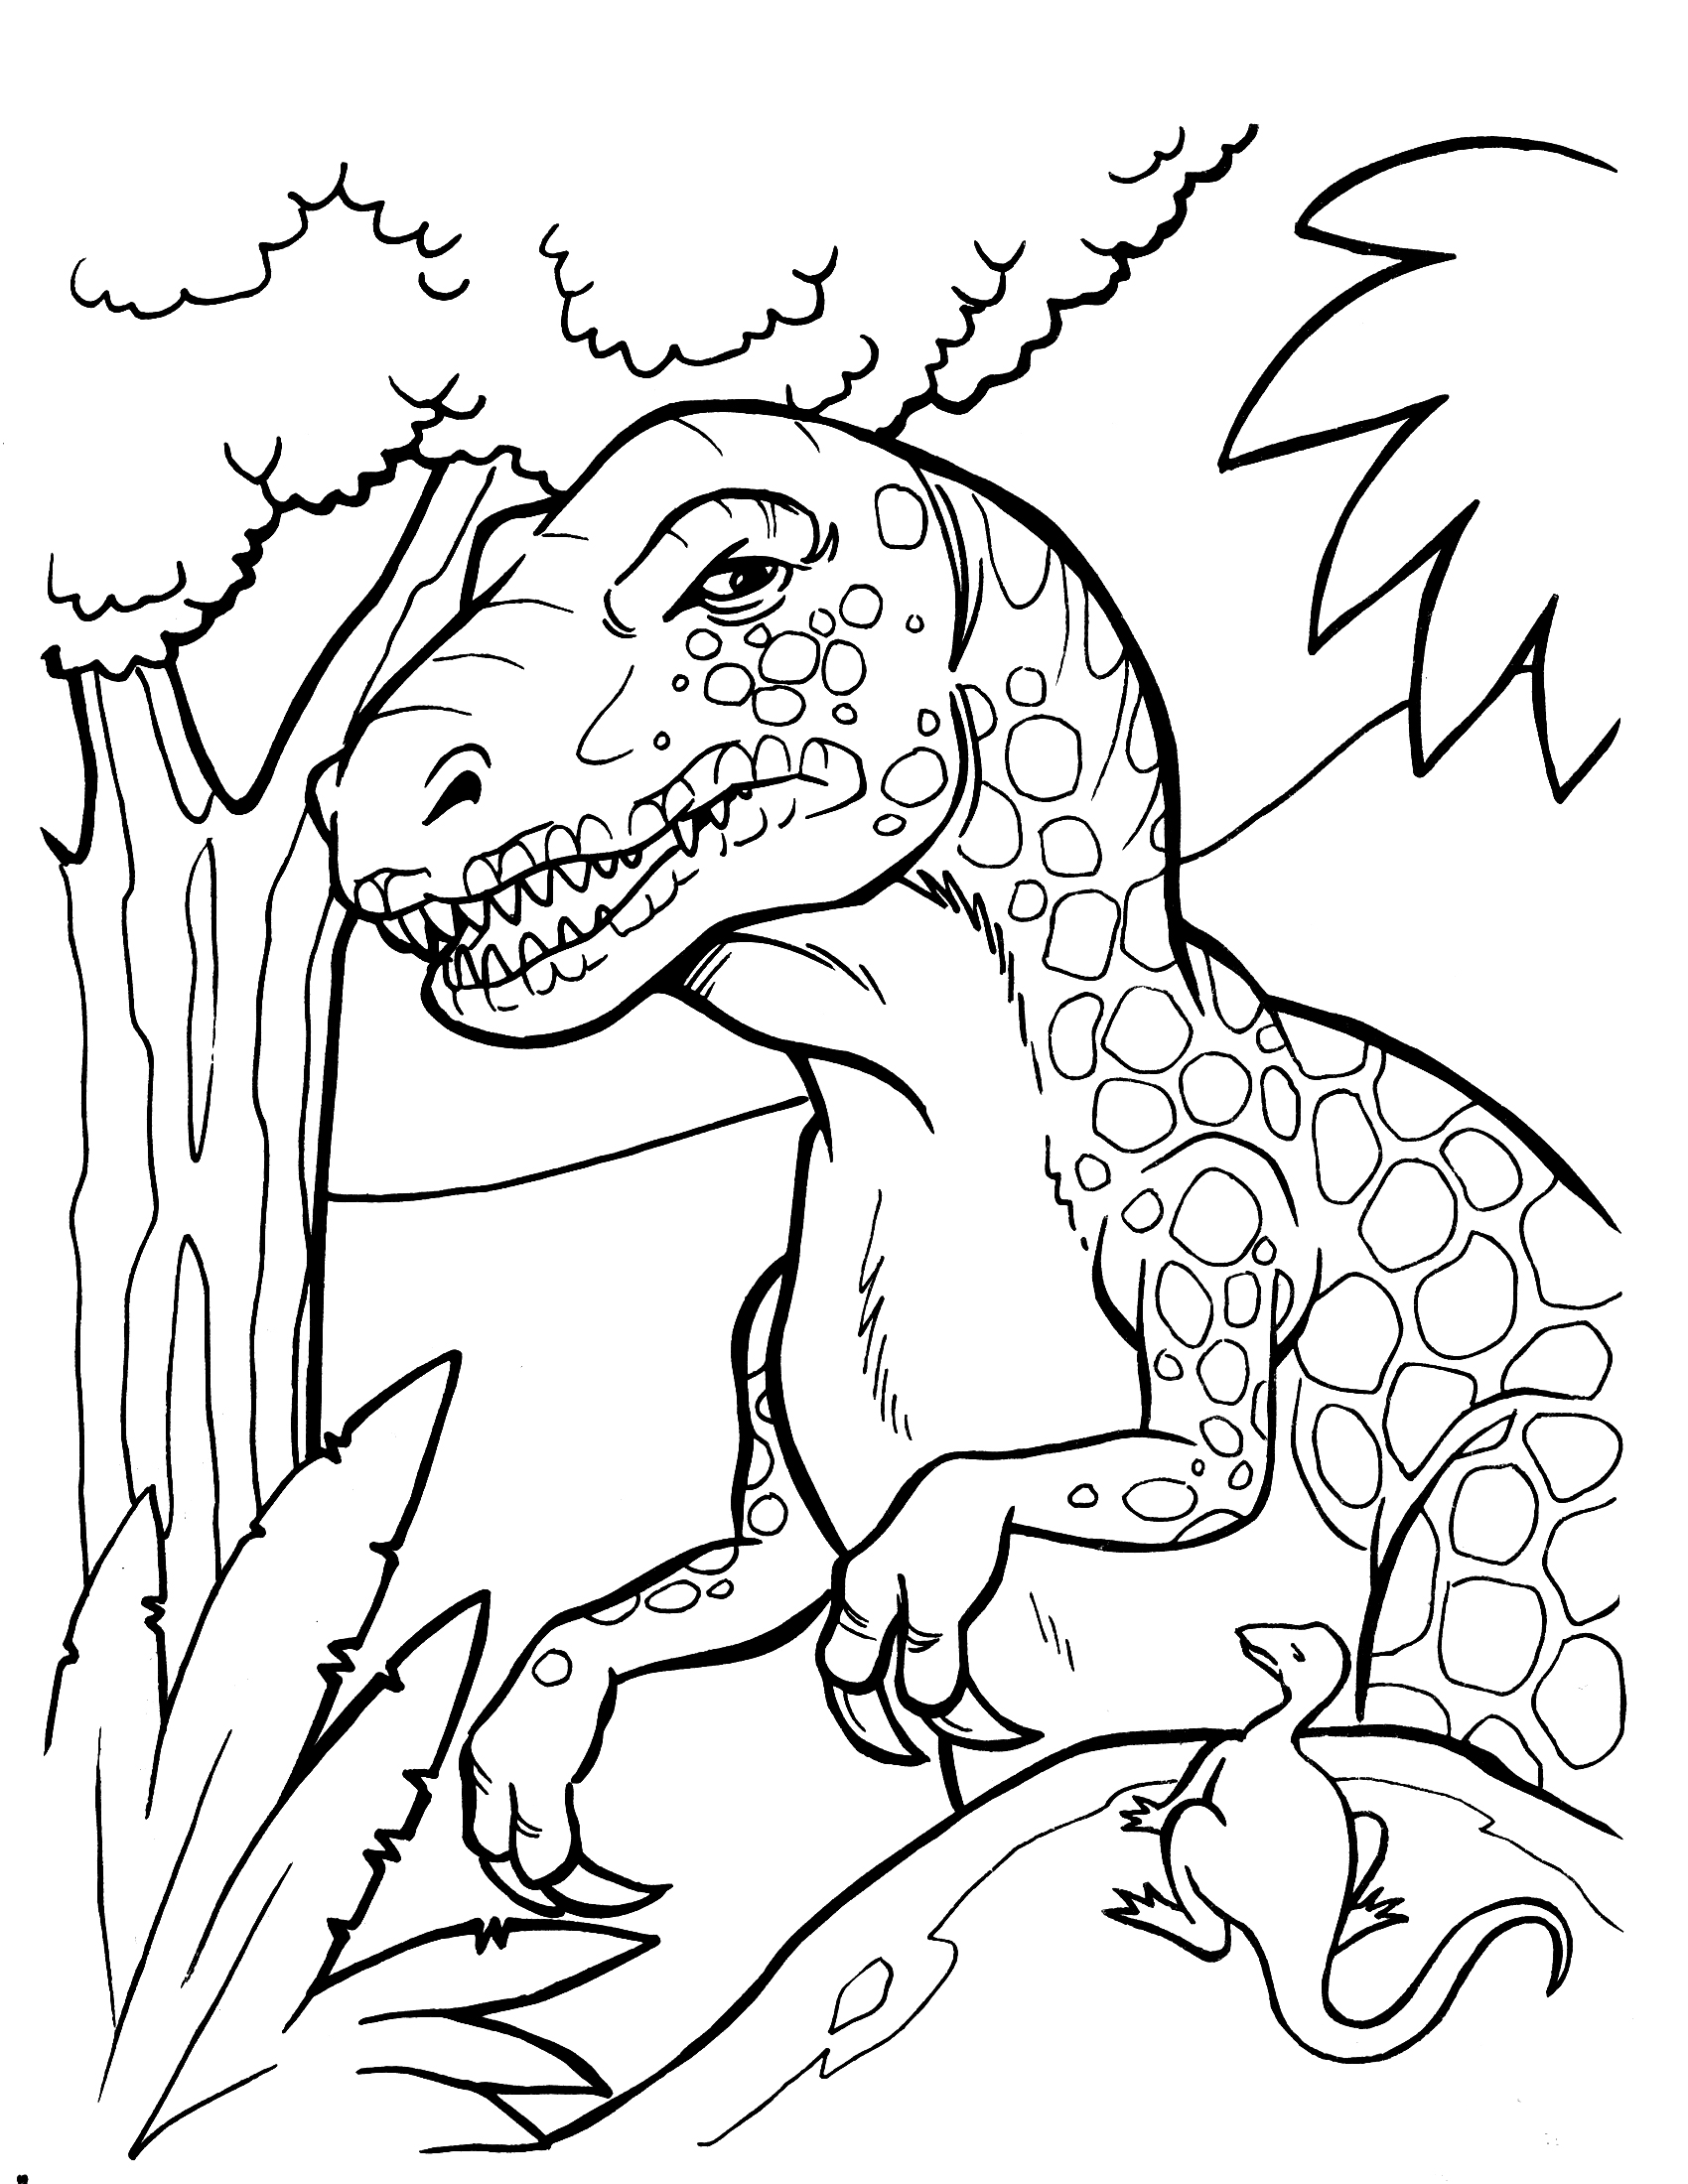 dinosaur colouring pictures to print free printable dinosaur coloring pages for kids dinosaur print colouring pictures to